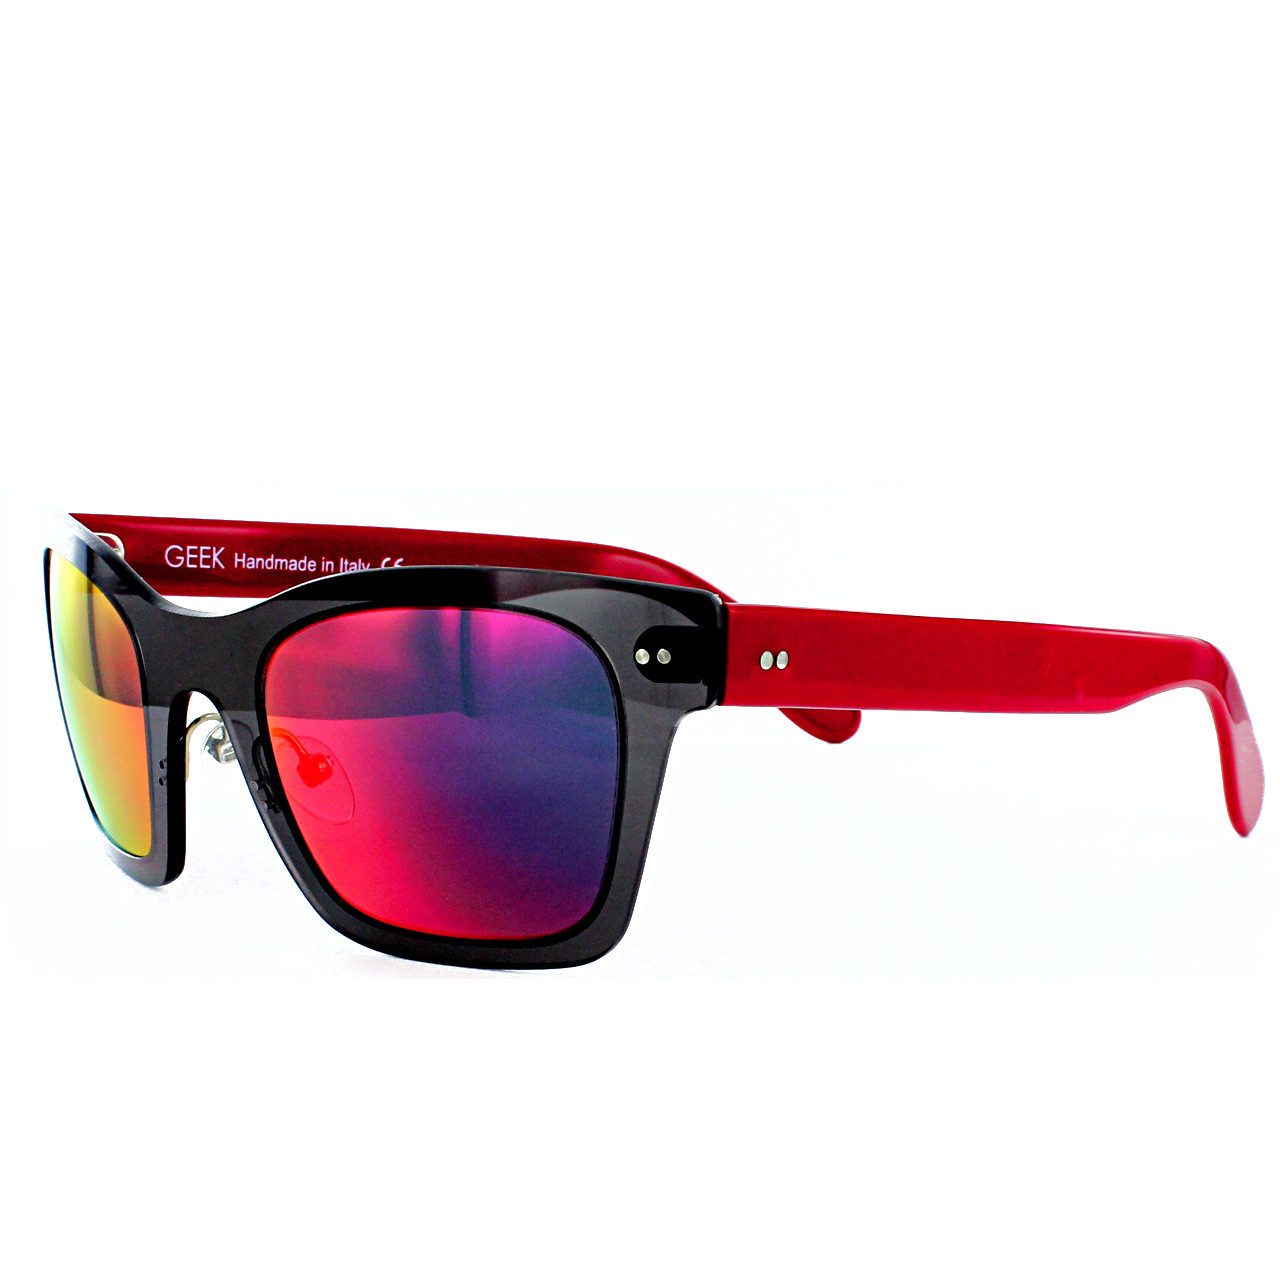 GEEK Couture Style Vegas Sunglasses Affordable Luxury